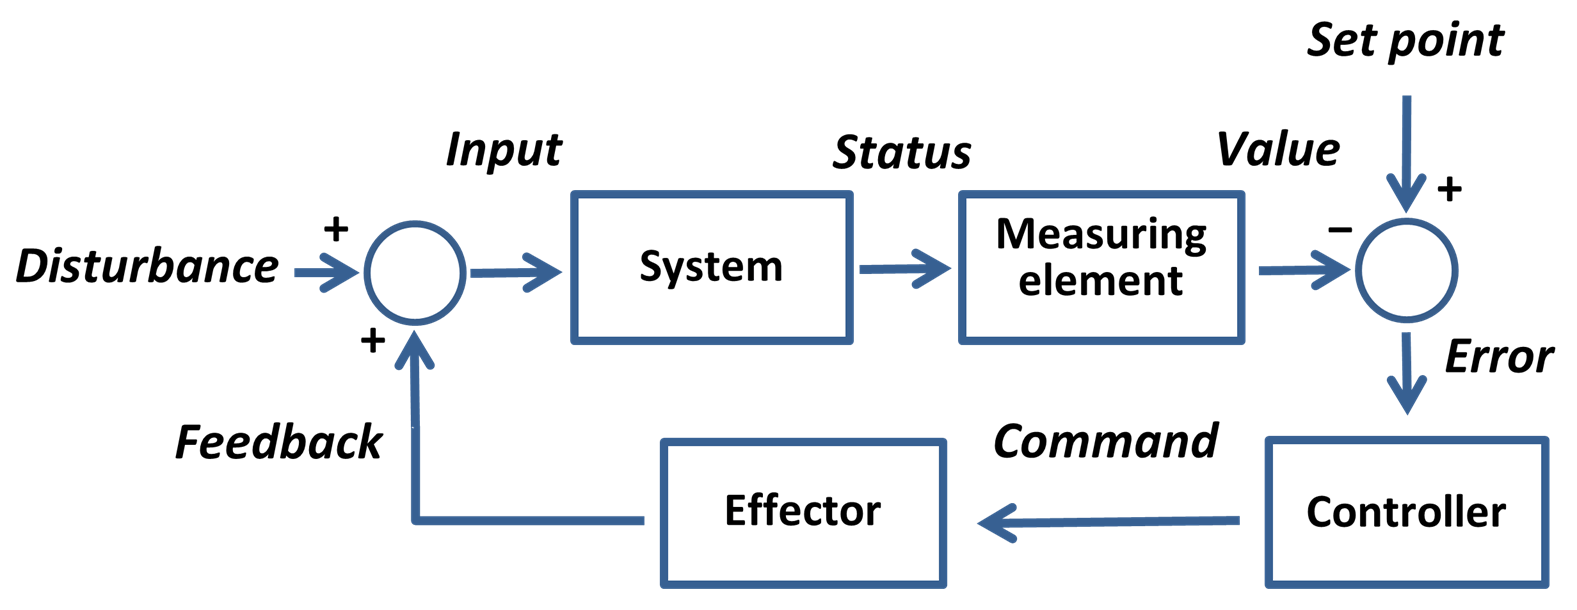 hight resolution of setpoint control system